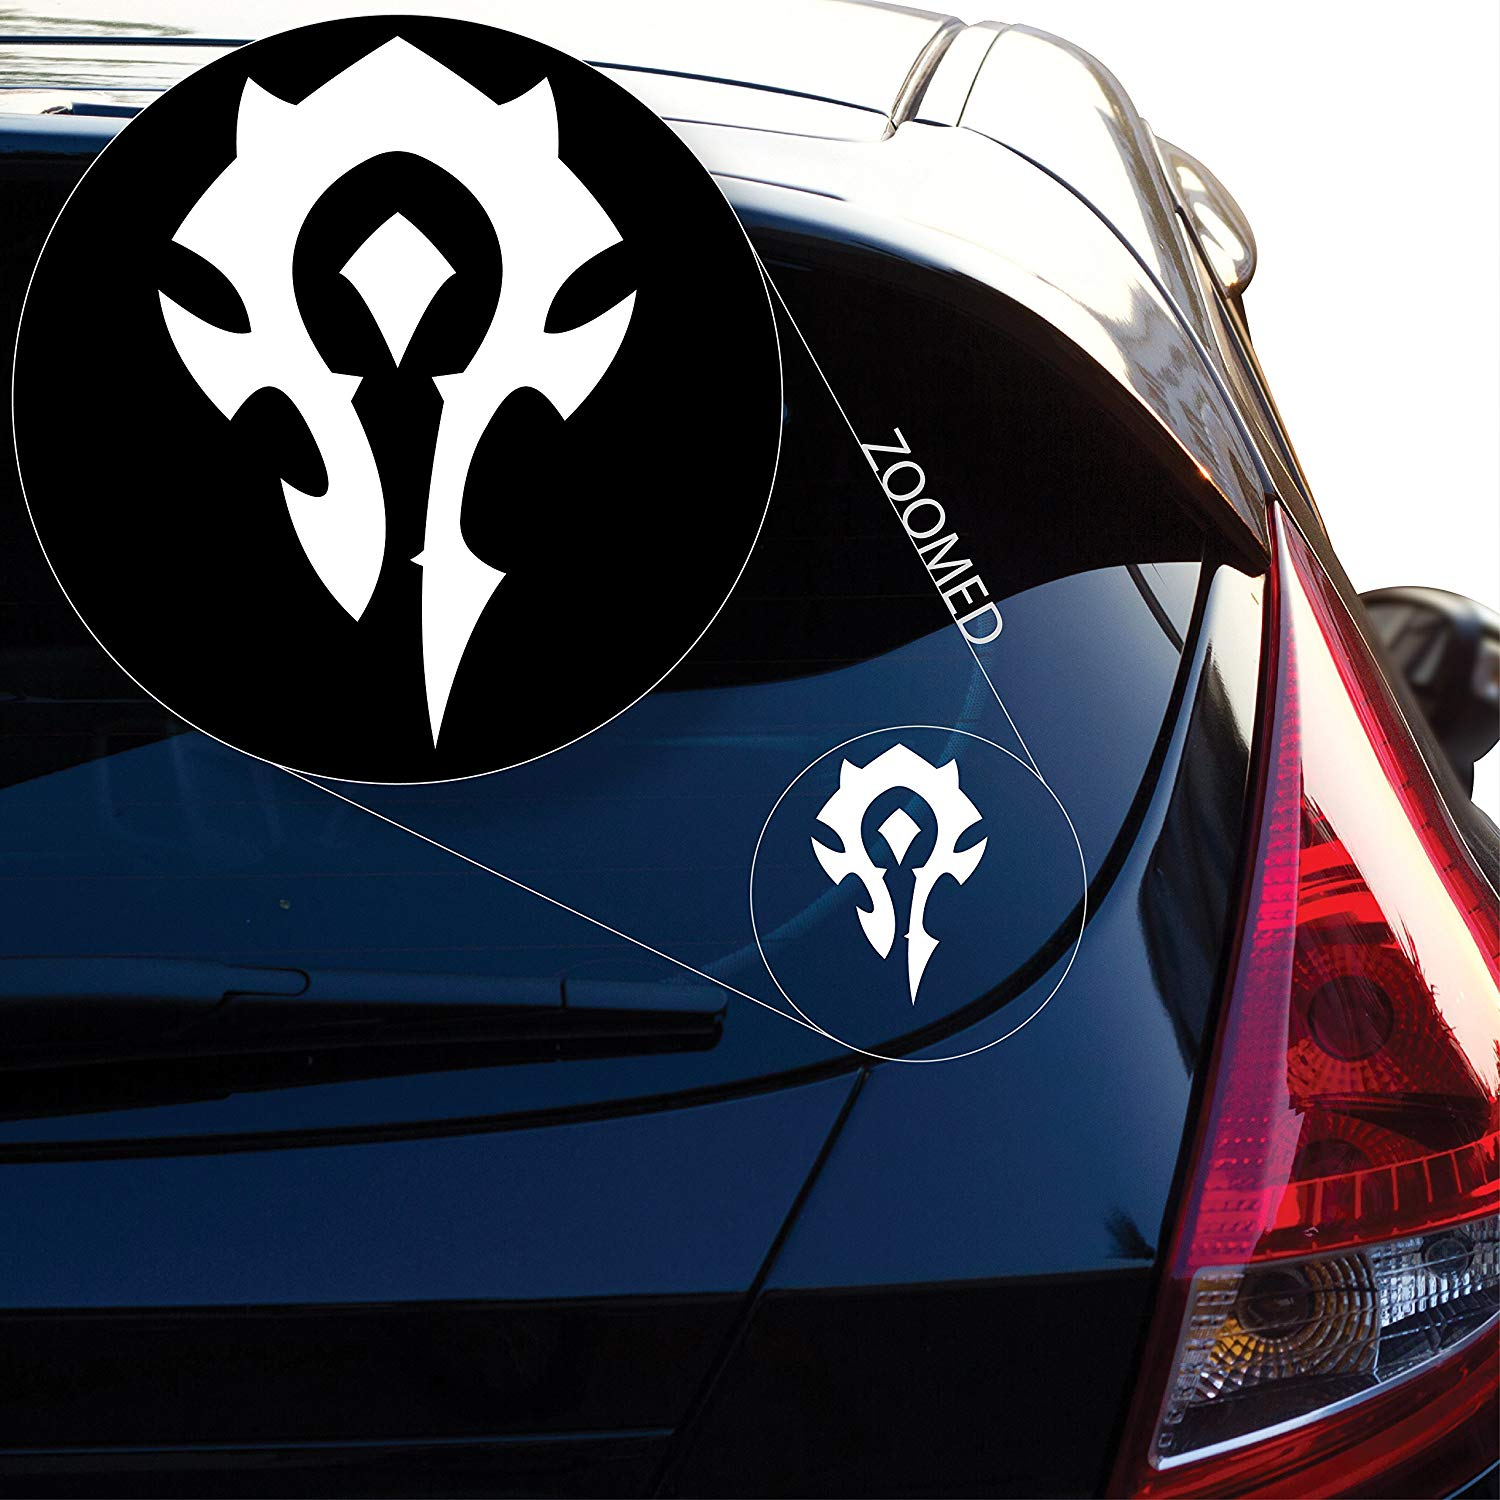 Yoonek Graphics World of Warcraft Decal Sticker for Car Window, Laptop and More. # 800 (4